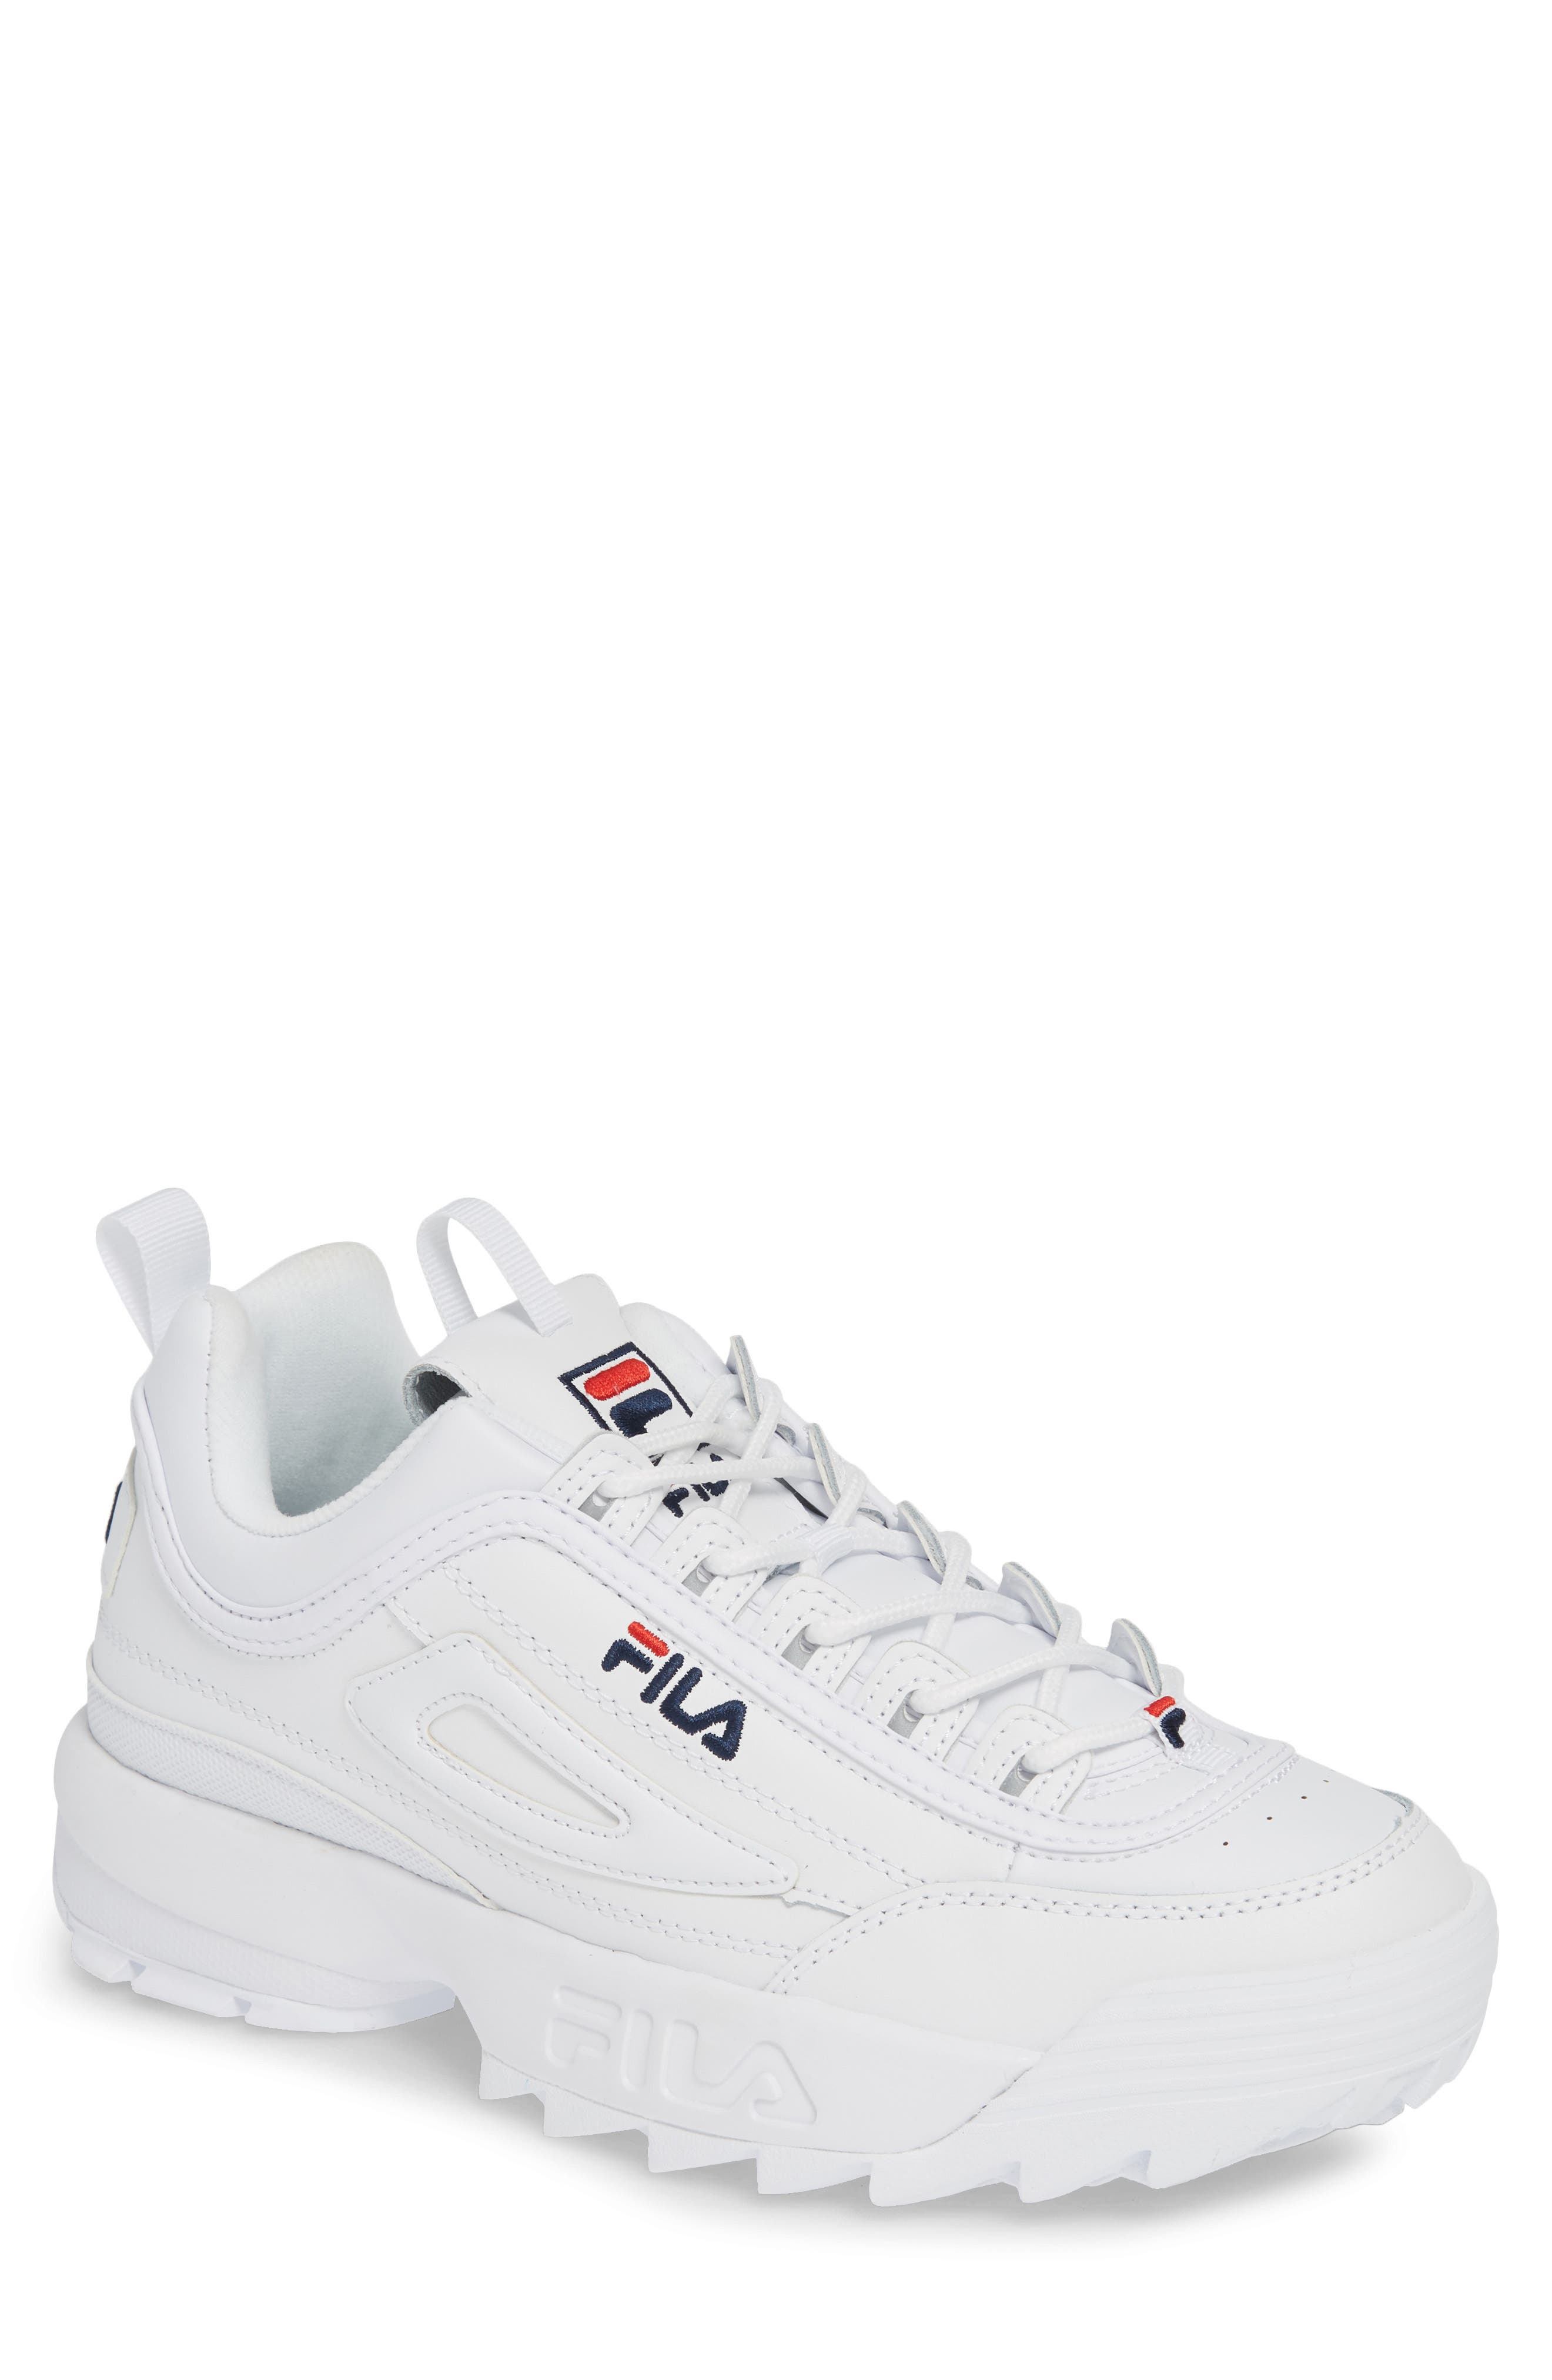 Disruptor II Premium Sneaker,                             Main thumbnail 1, color,                             WHITE/ NAVY/ RED